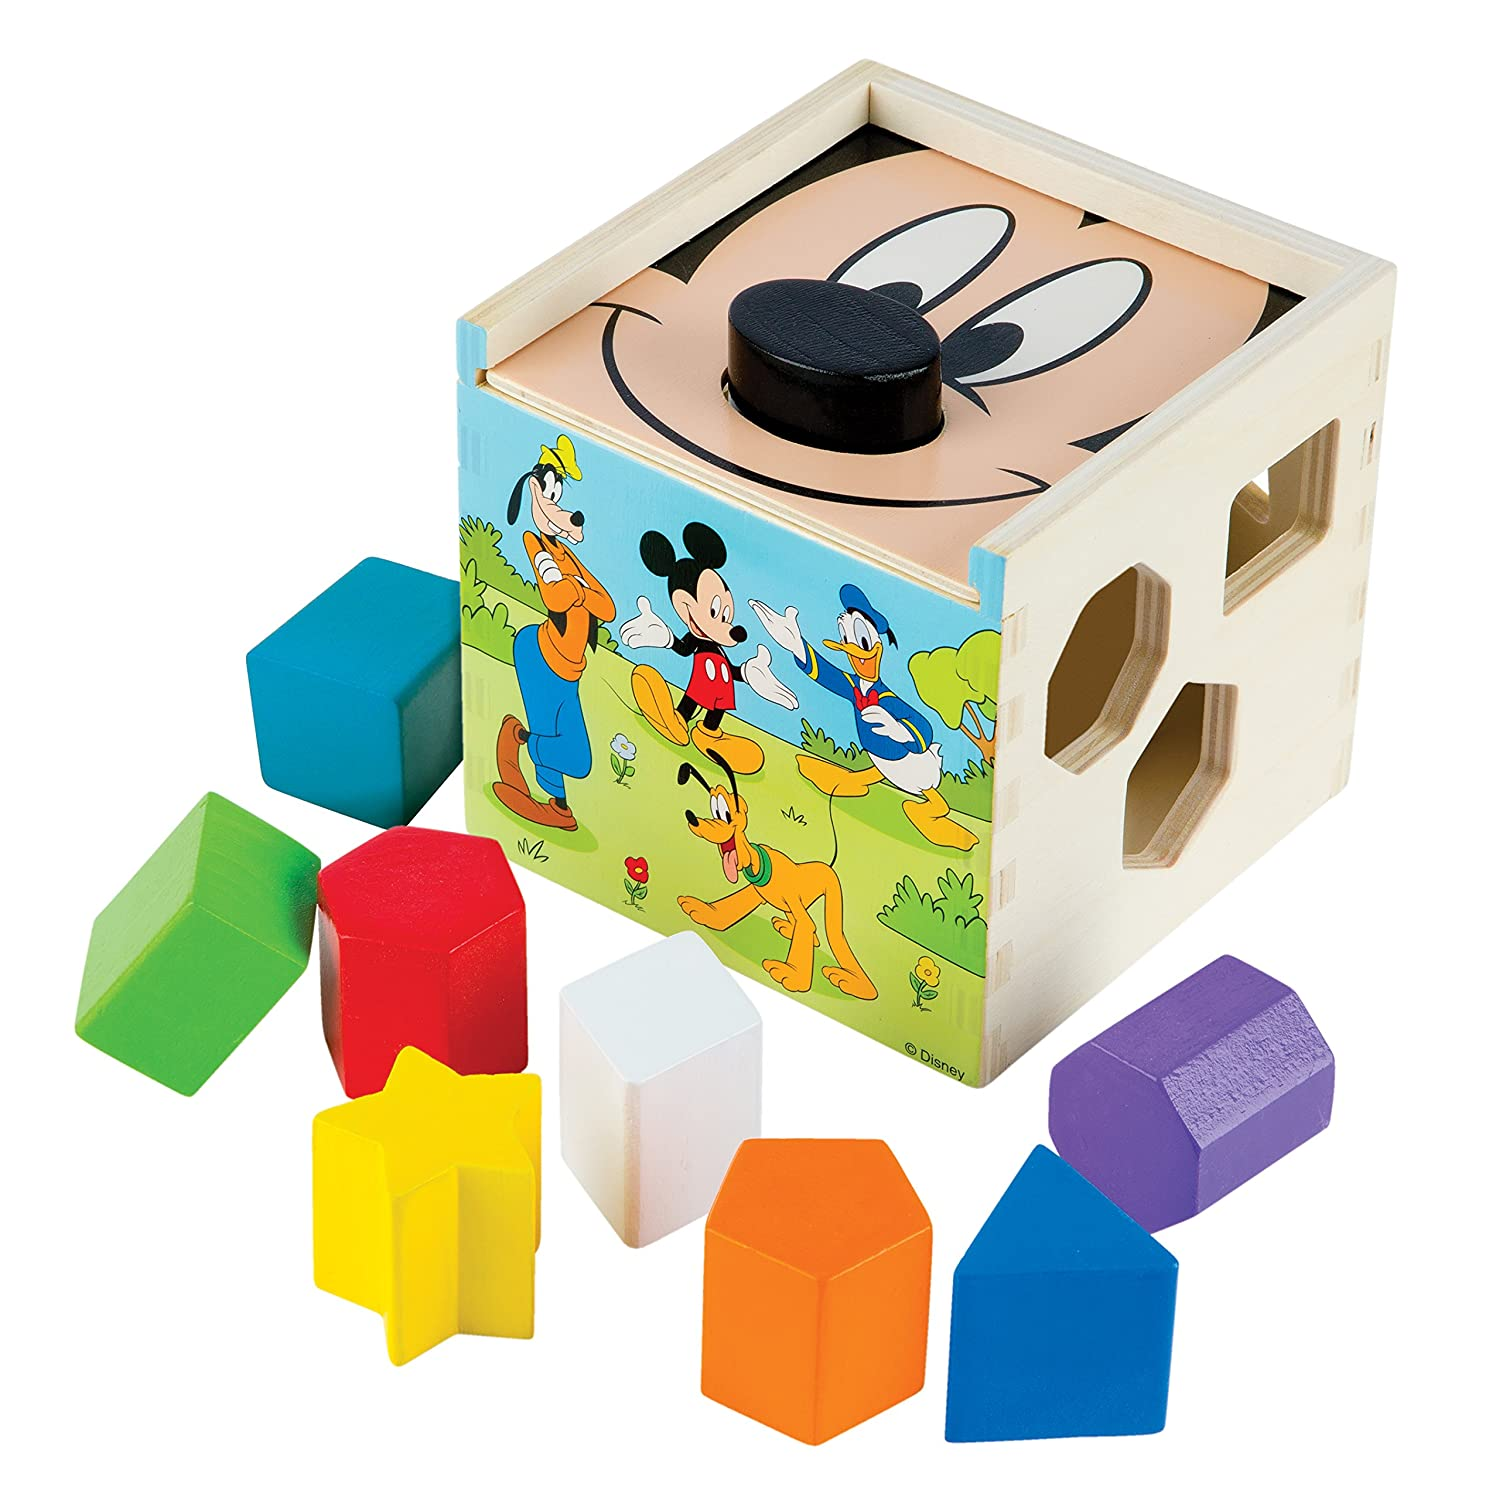 Melissa & Doug Mickey Mouse & Friends Wooden Shape Sorting Cube Baby Toy Melissa and Doug 5780